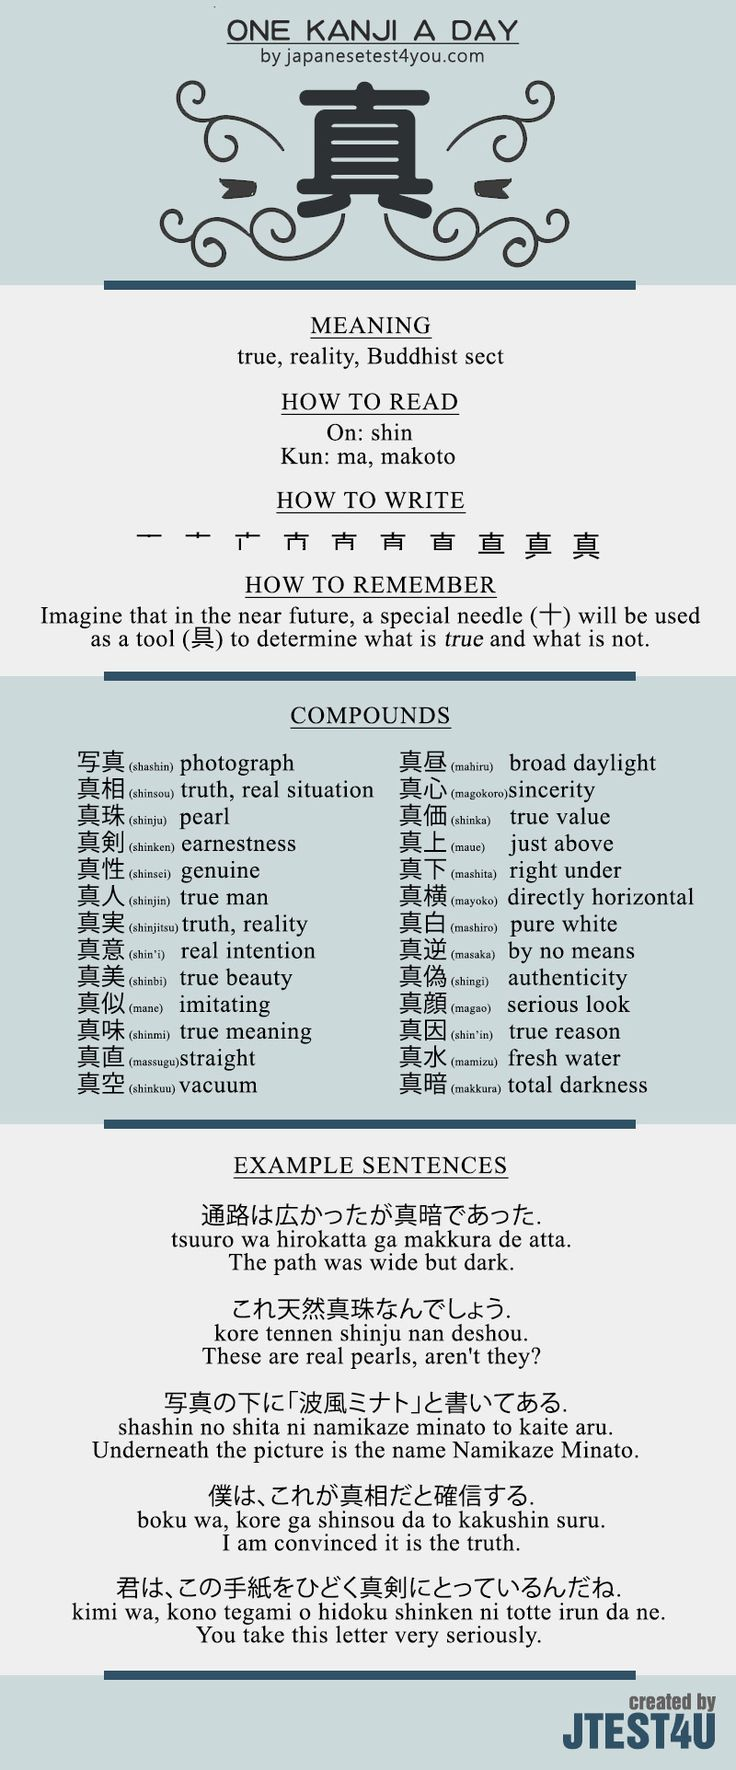 Learn one Kanji a day with infographic - 真 (shin): http://japanesetest4you.com/learn-one-kanji-a-day-with-infographic-%e7%9c%9f-shin/